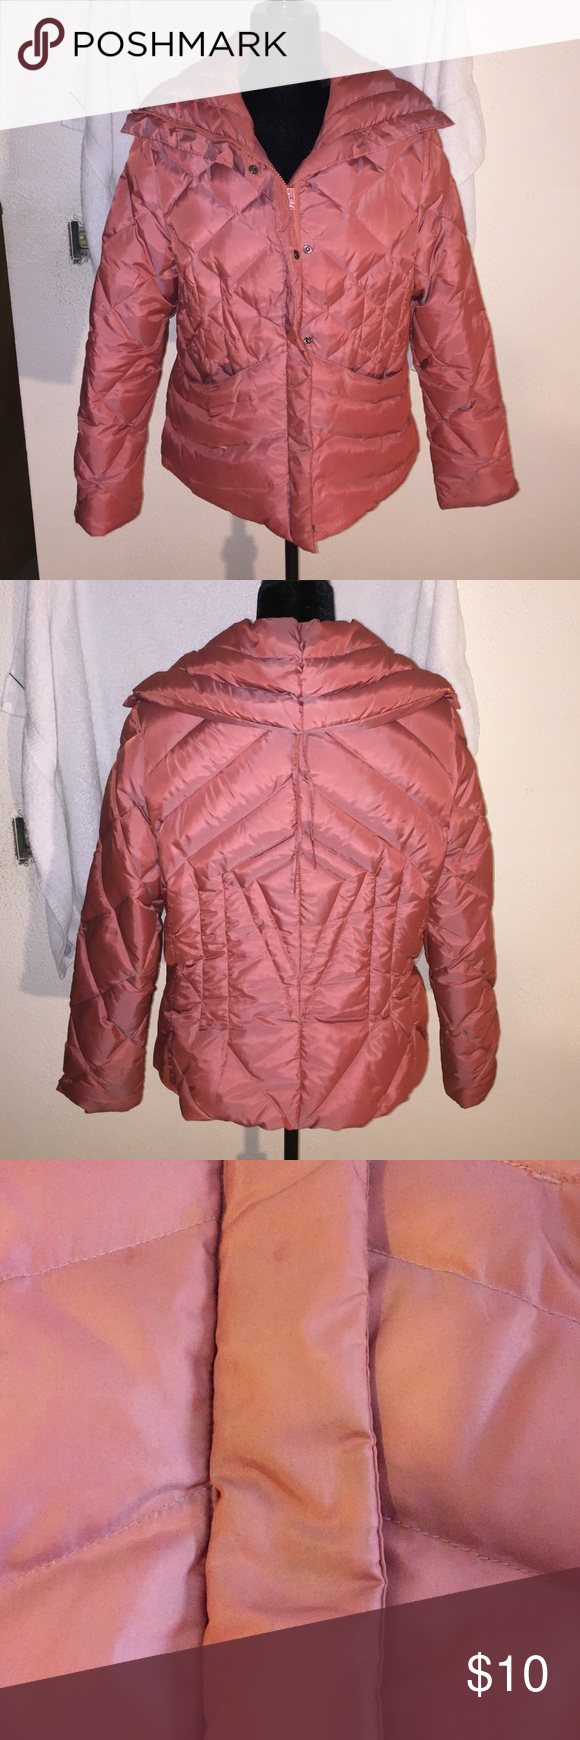 Westbound Puffy Coat Westbound Puffy Coat, Size-M, coral, zips & snaps, shell-62% nylon, 38% polyester, lining-100% polyester, filler-70% Down cluster, 30% waterfowl feathers, good condition Jackets & Coats Puffers